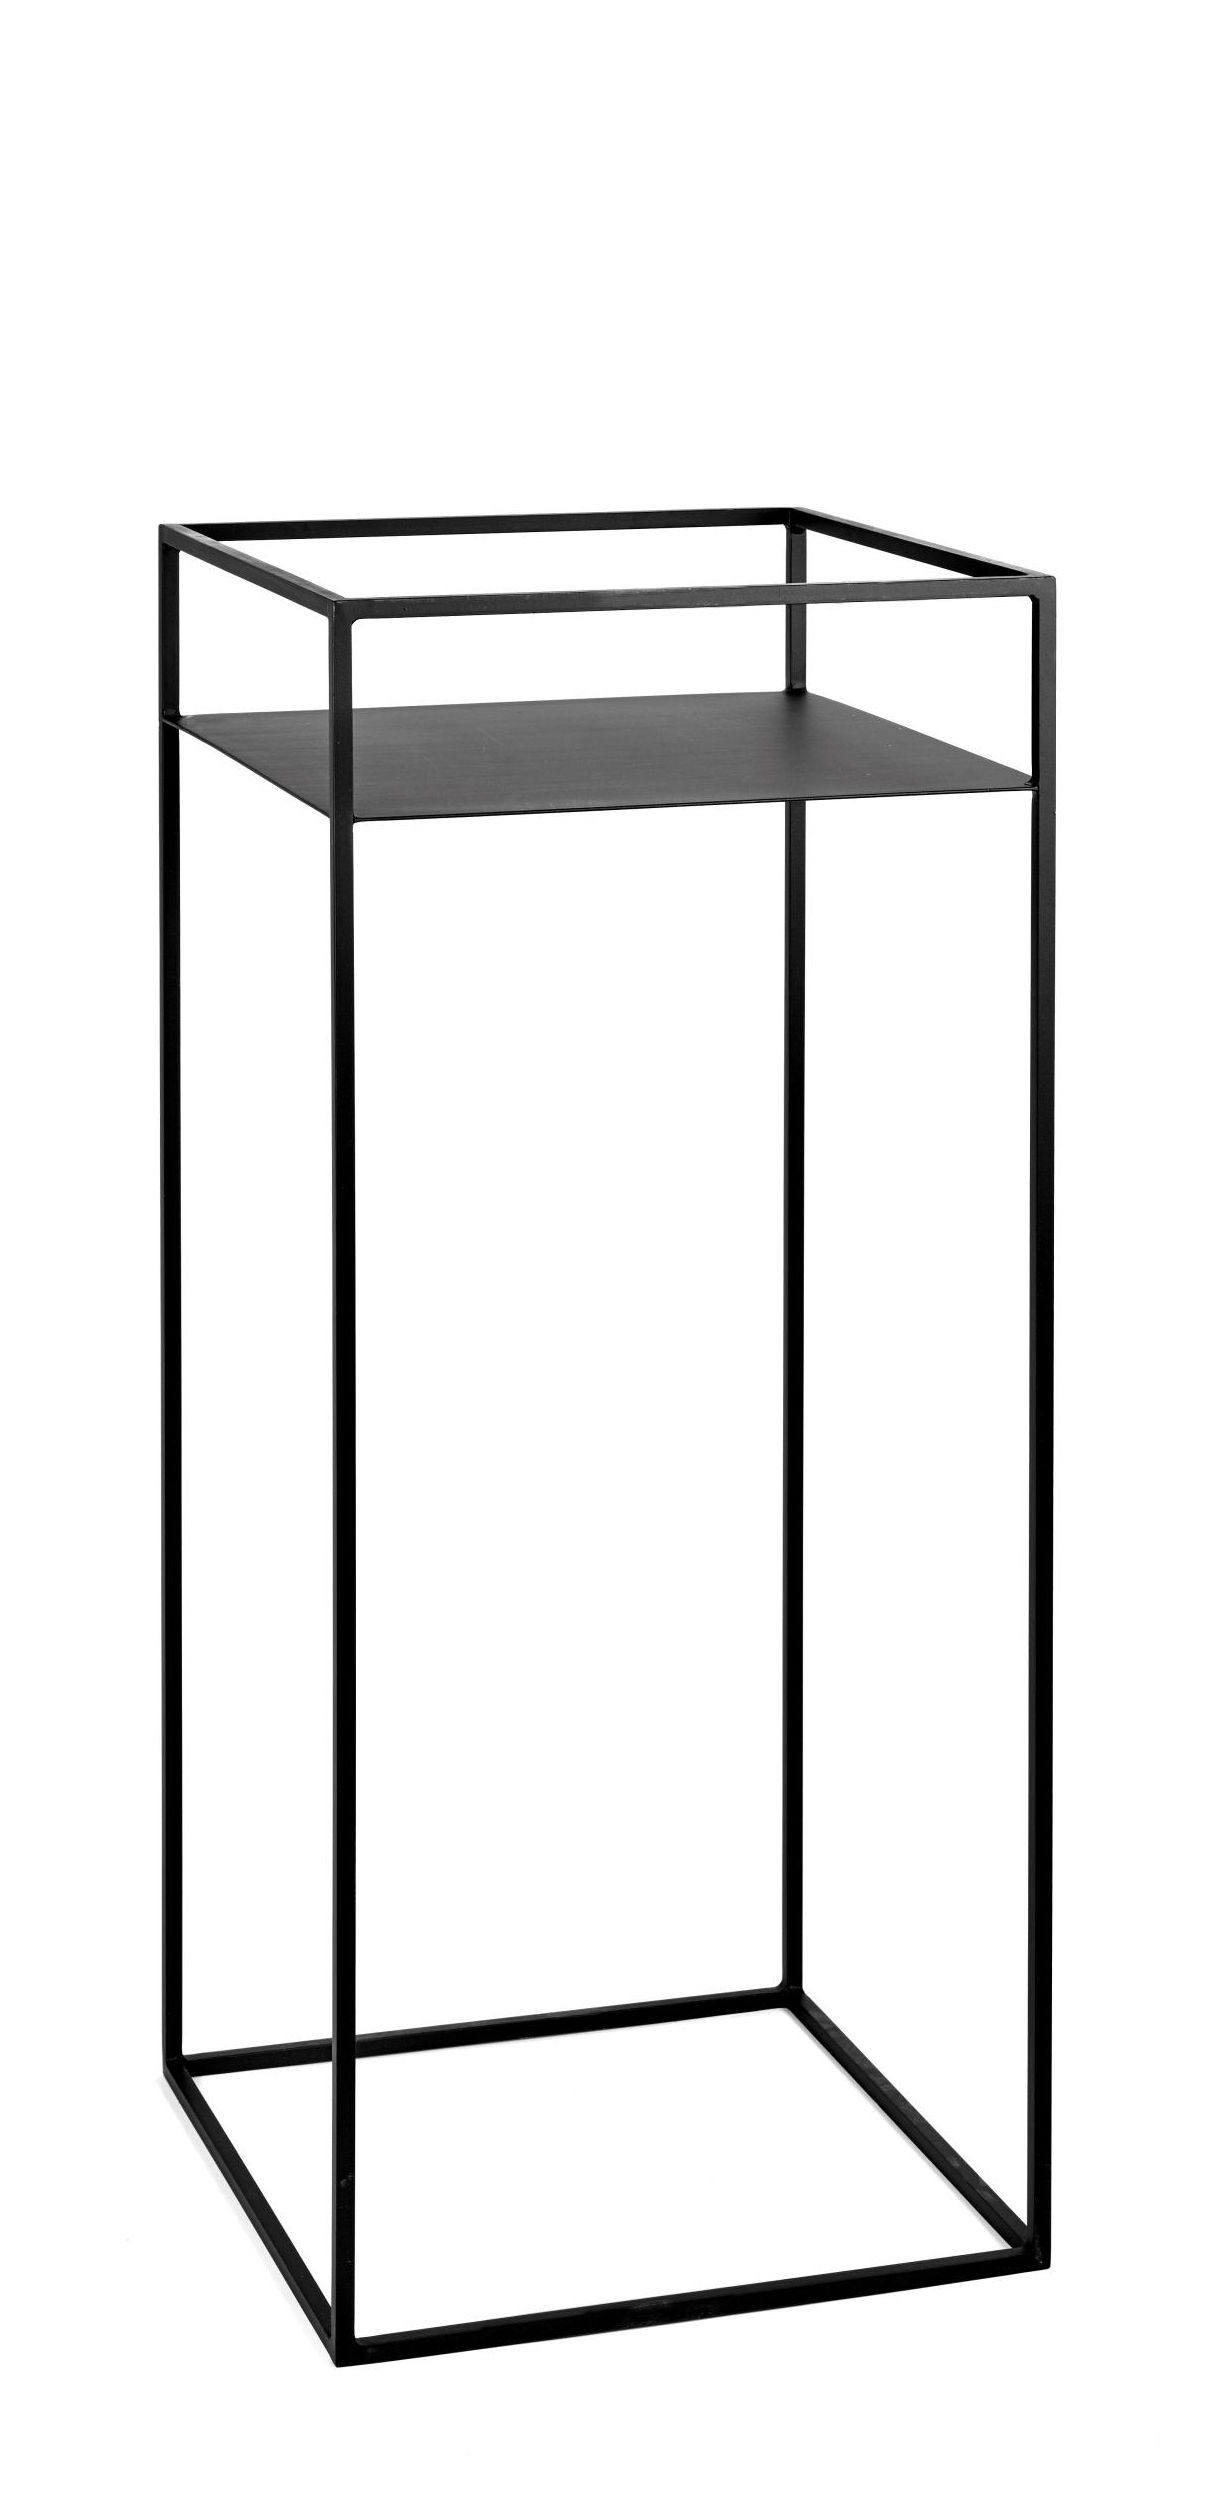 Furniture - Coffee Tables - Plant stand - / Small table - 39 x 39 cm x H 90 cm by Serax - Black - Lacquered metal